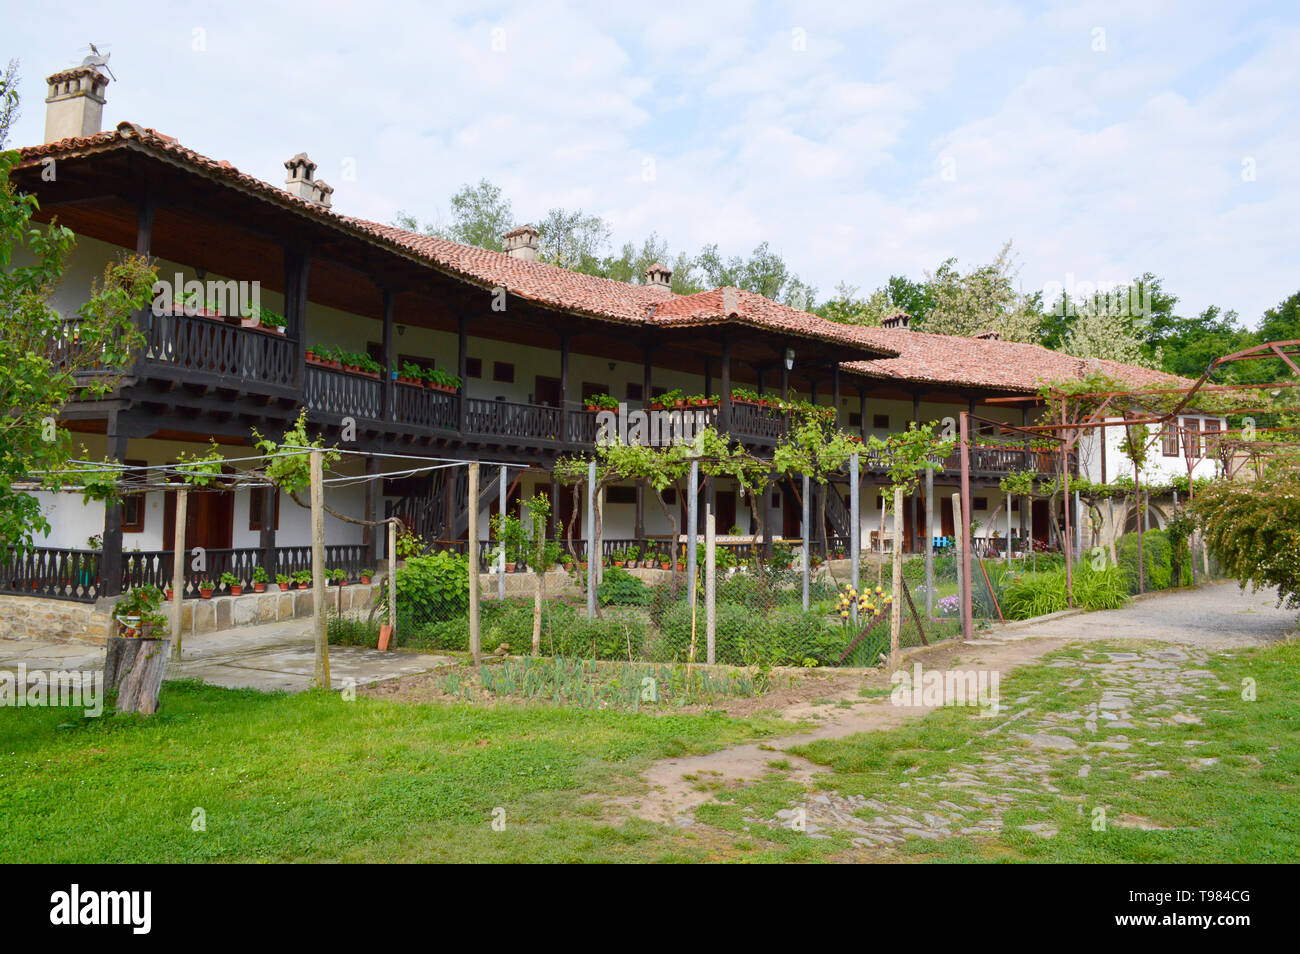 "Monastery ""The Nativity of Mother of God"", near the Village of Kilifarevo, Bulgaria - Stock Image"